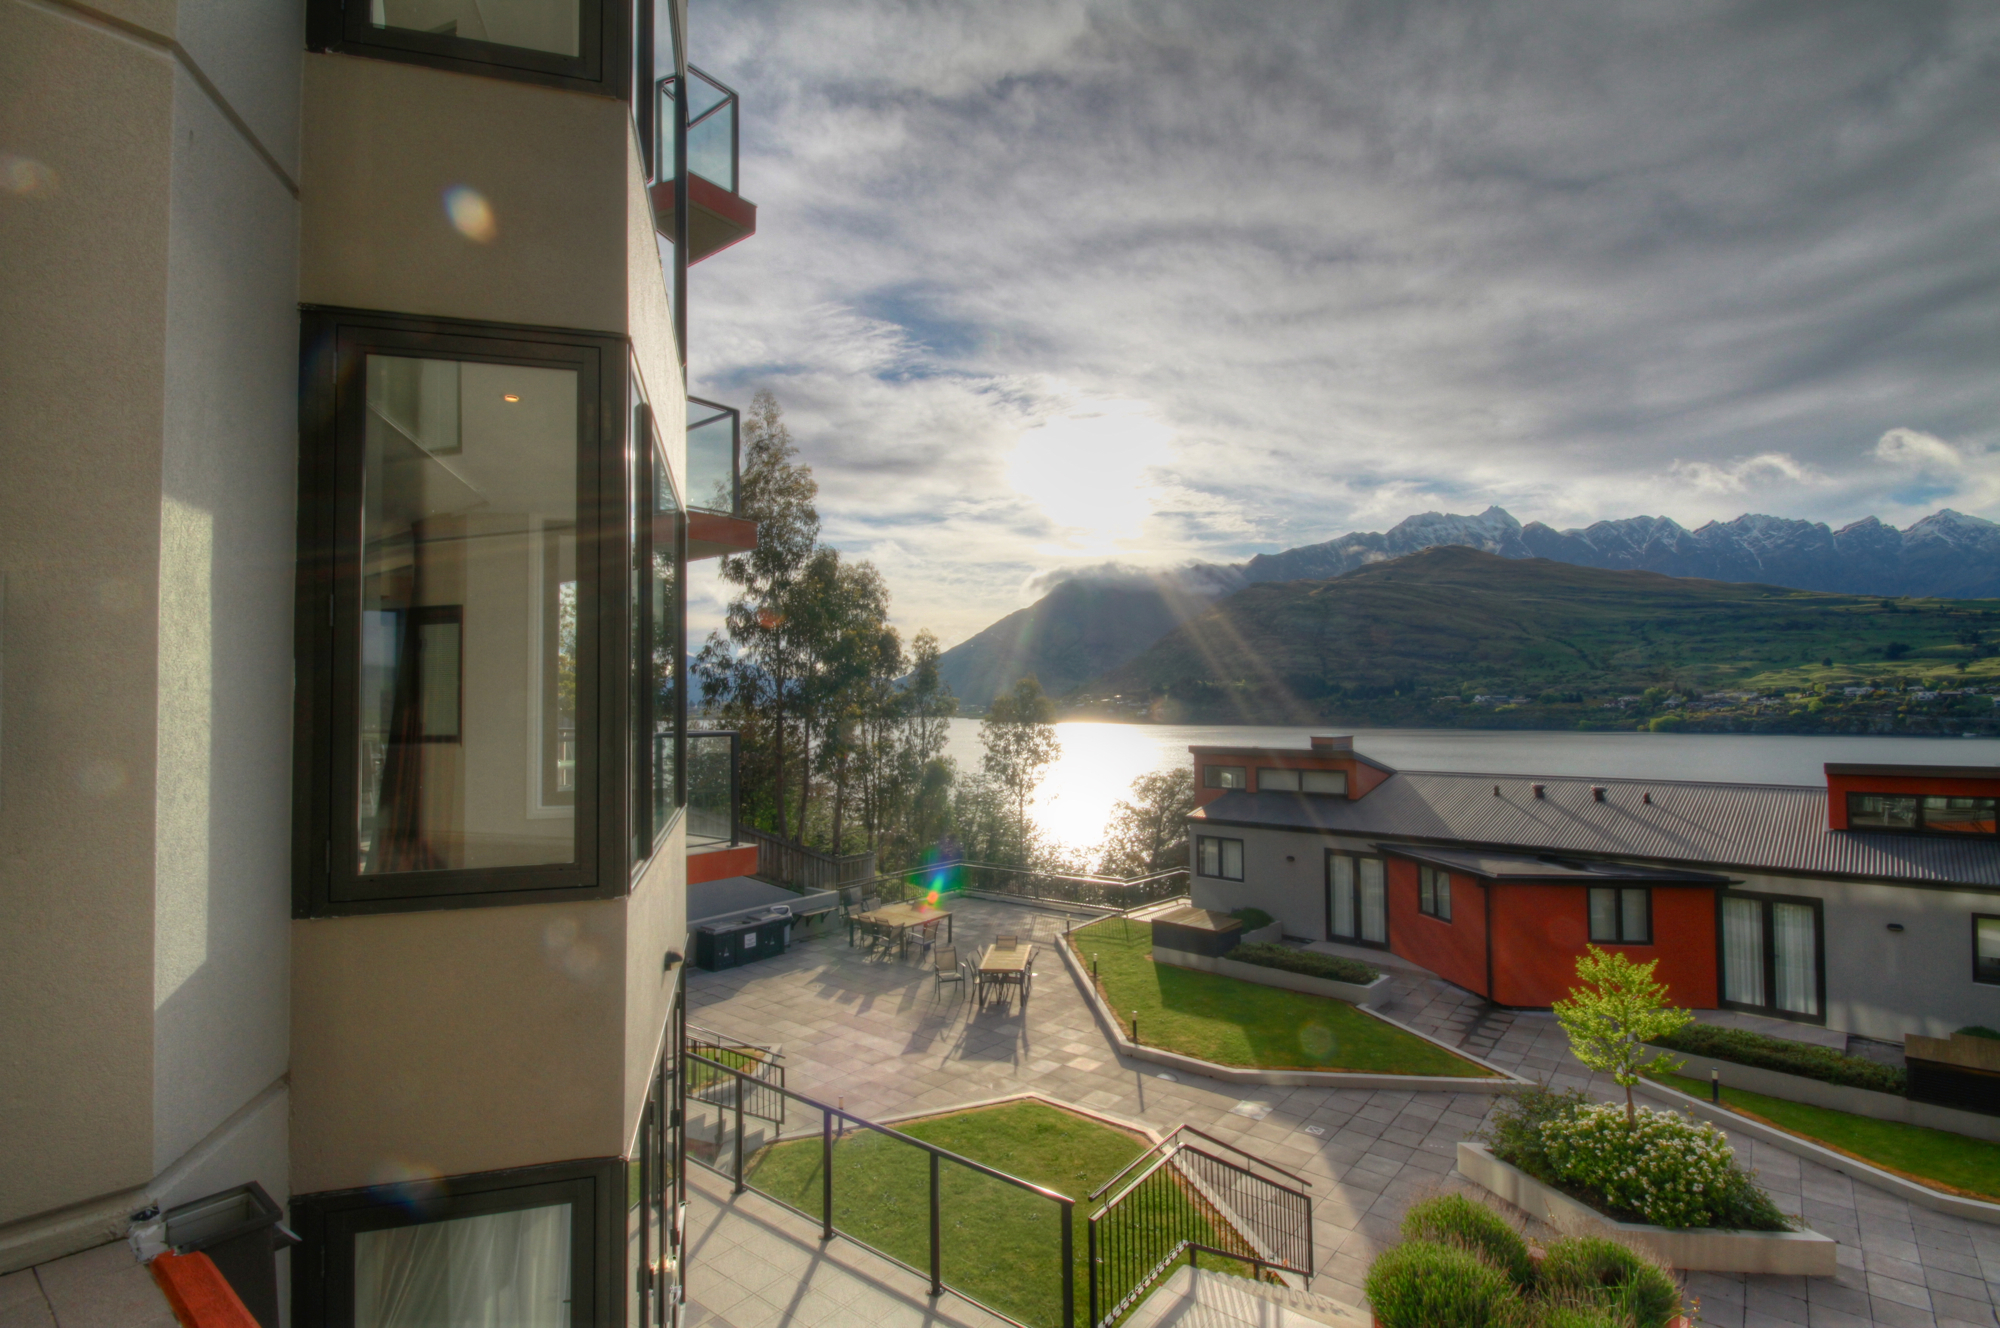 Apartman Dairesi için Satış at Apt 705 & 705a, Oaks Shores, 327 Frankton Road, Qu 705327 Frankton Road, Queenstown Queenstown, Southern Lakes (Güney Gölleri), 9300 Yeni Zelanda